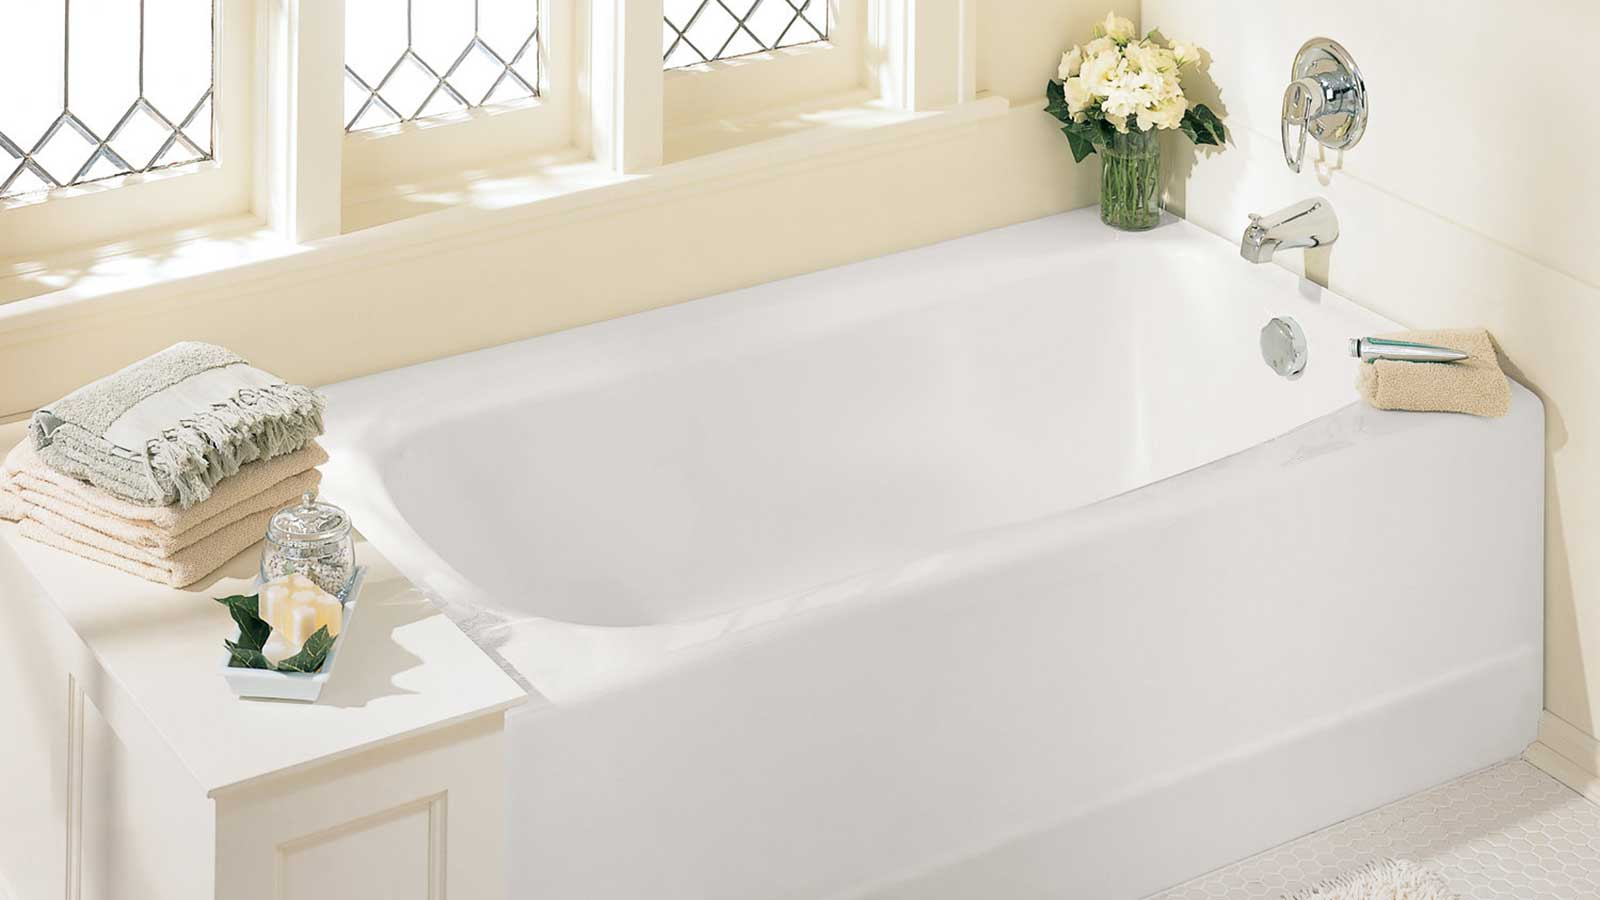 Best Bathtubs 2021 Freestanding Drop In Walk In And Recessed